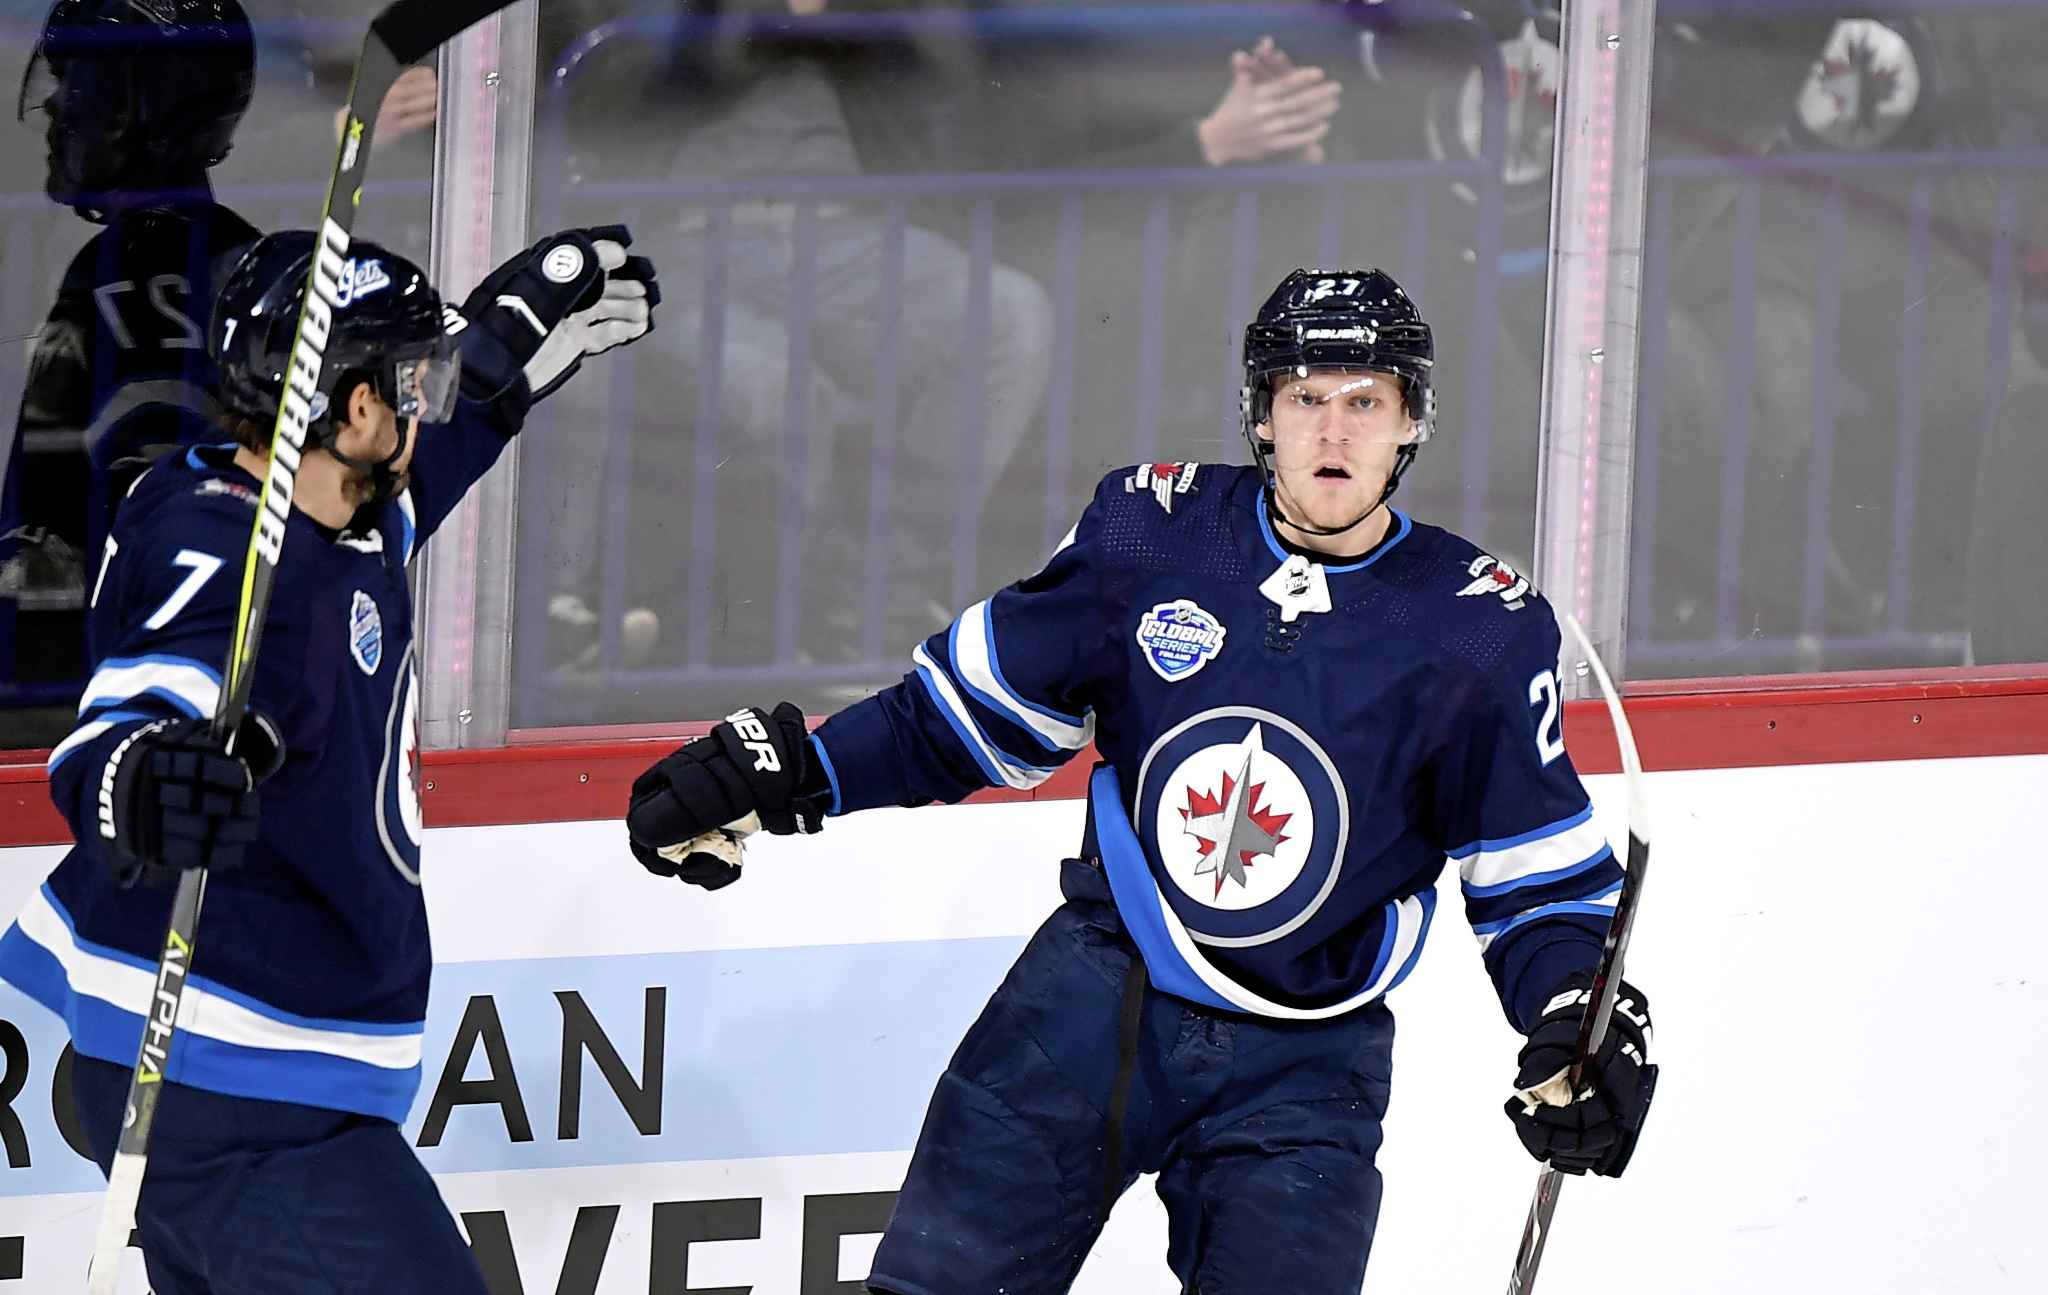 Nikolaj Ehlers celebrates the Jets' first goal Friday with Ben Chiarot. (Martti Kainulainen / Lehtikuva)